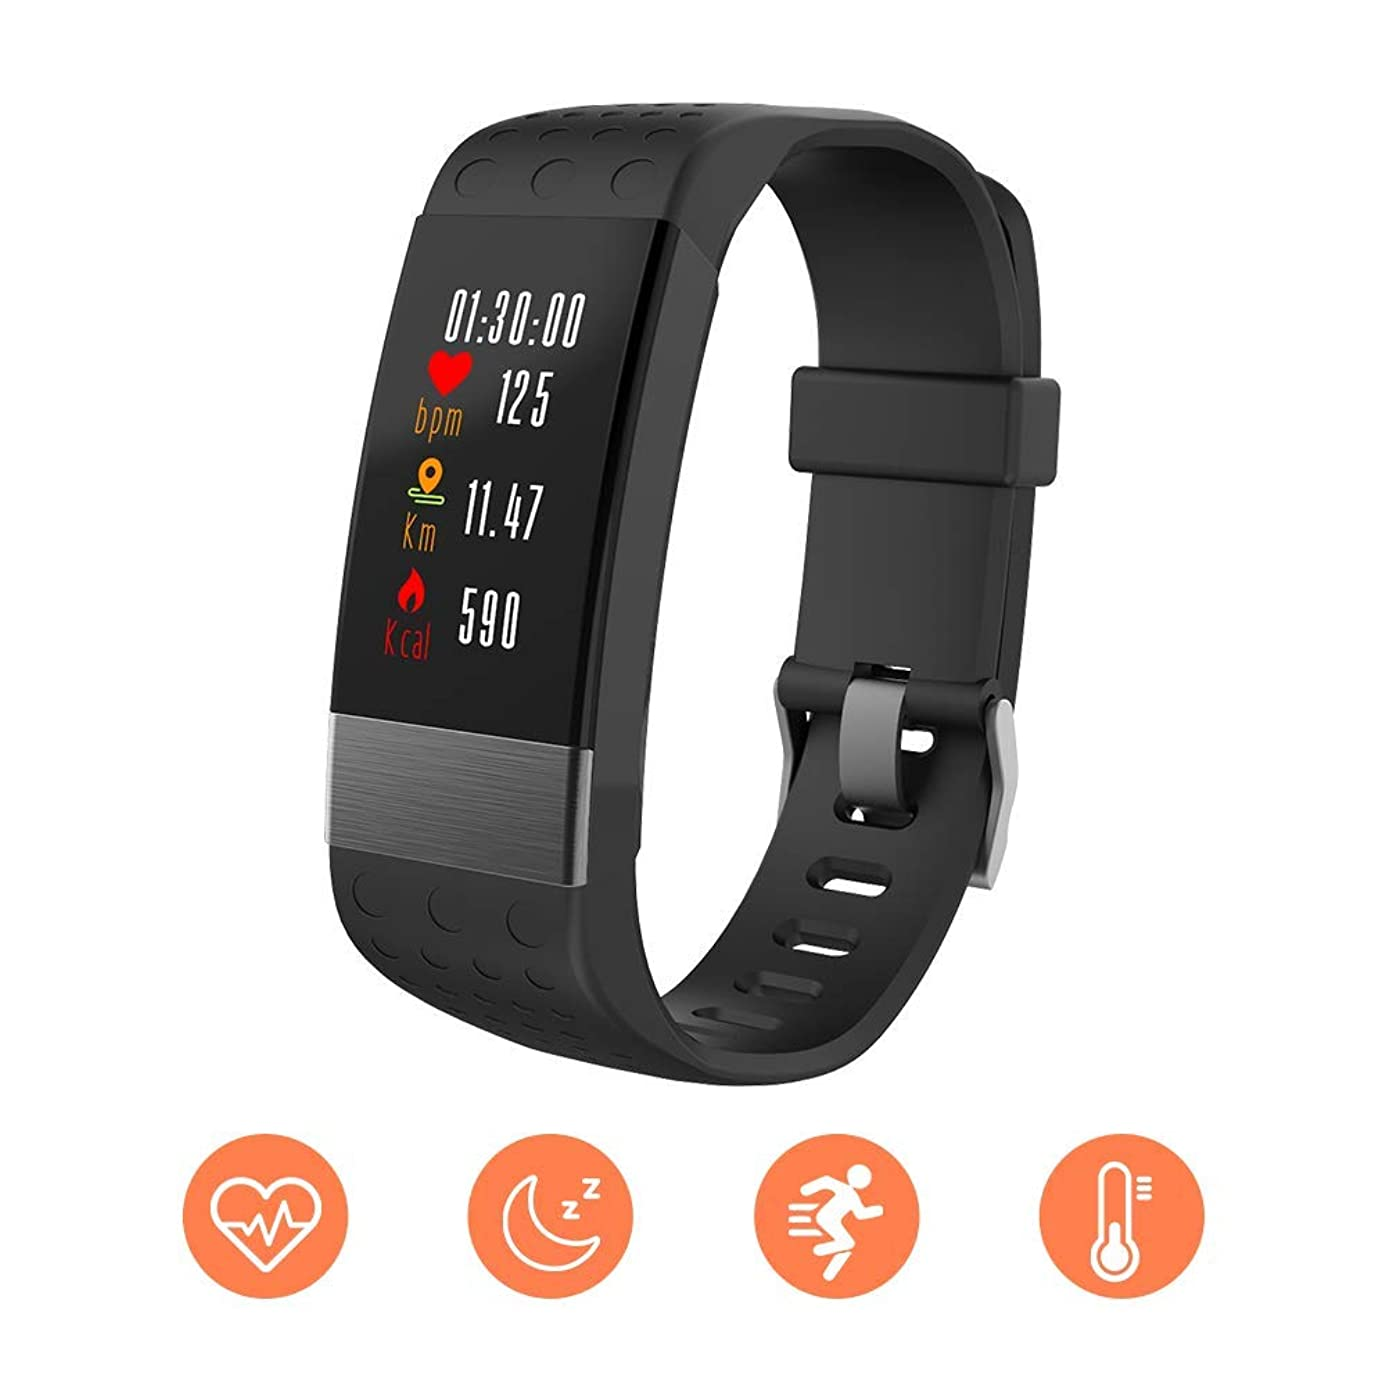 ZRSJ Smart Bracelet Fitness Tracker with Heart Rate Monitor Blood Pressure IP67 Waterproof Call/SMS Reminder Pedometer for Android & iOS Men Women (Black)